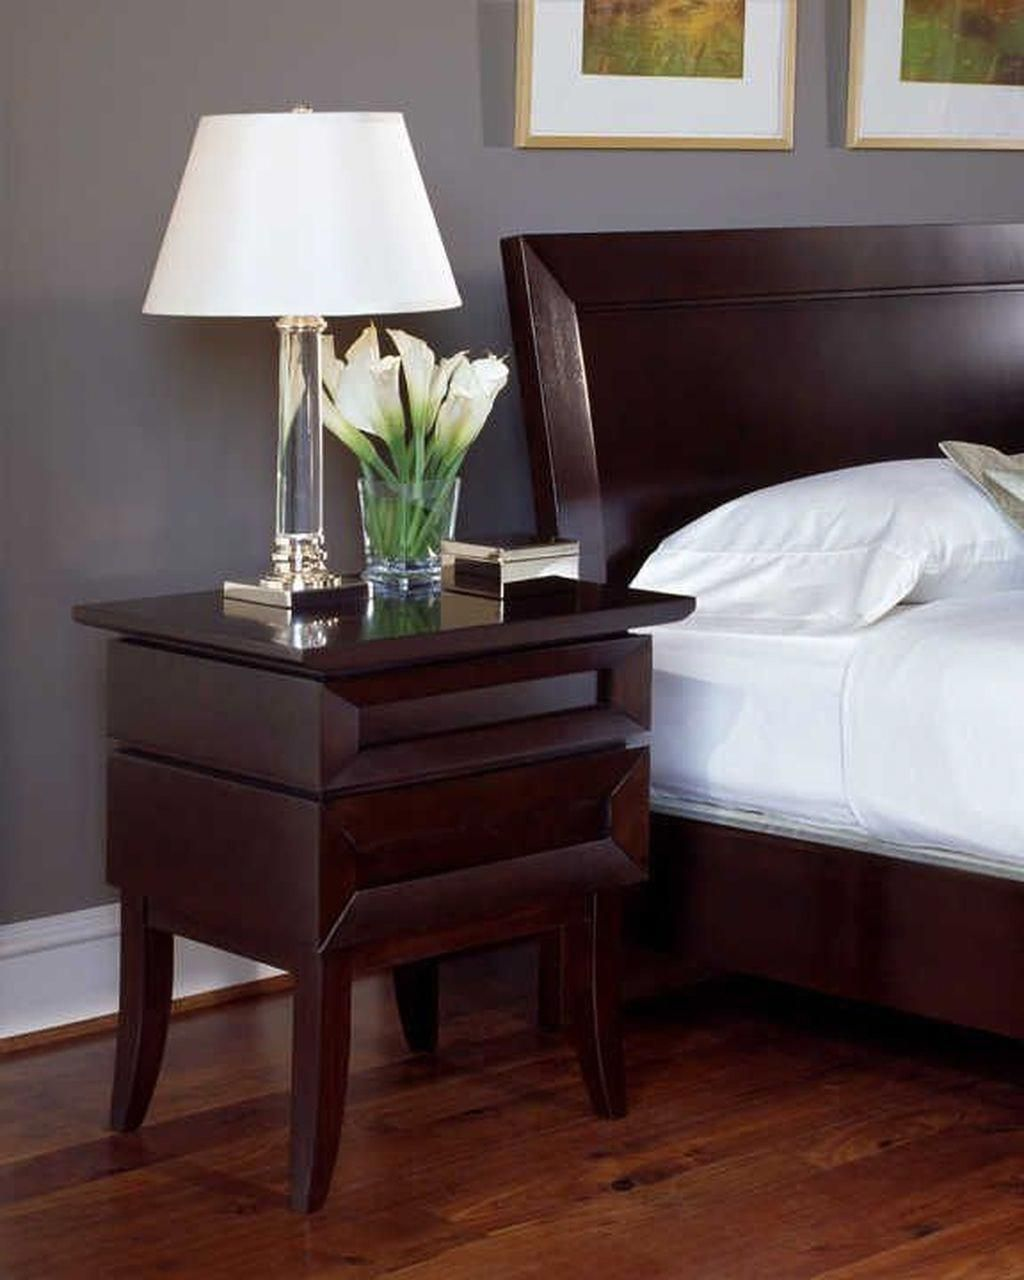 41 cool bedroom decorating ideas with dark wood furniture rh in pinterest com Wood Wall Art Modern Wood House